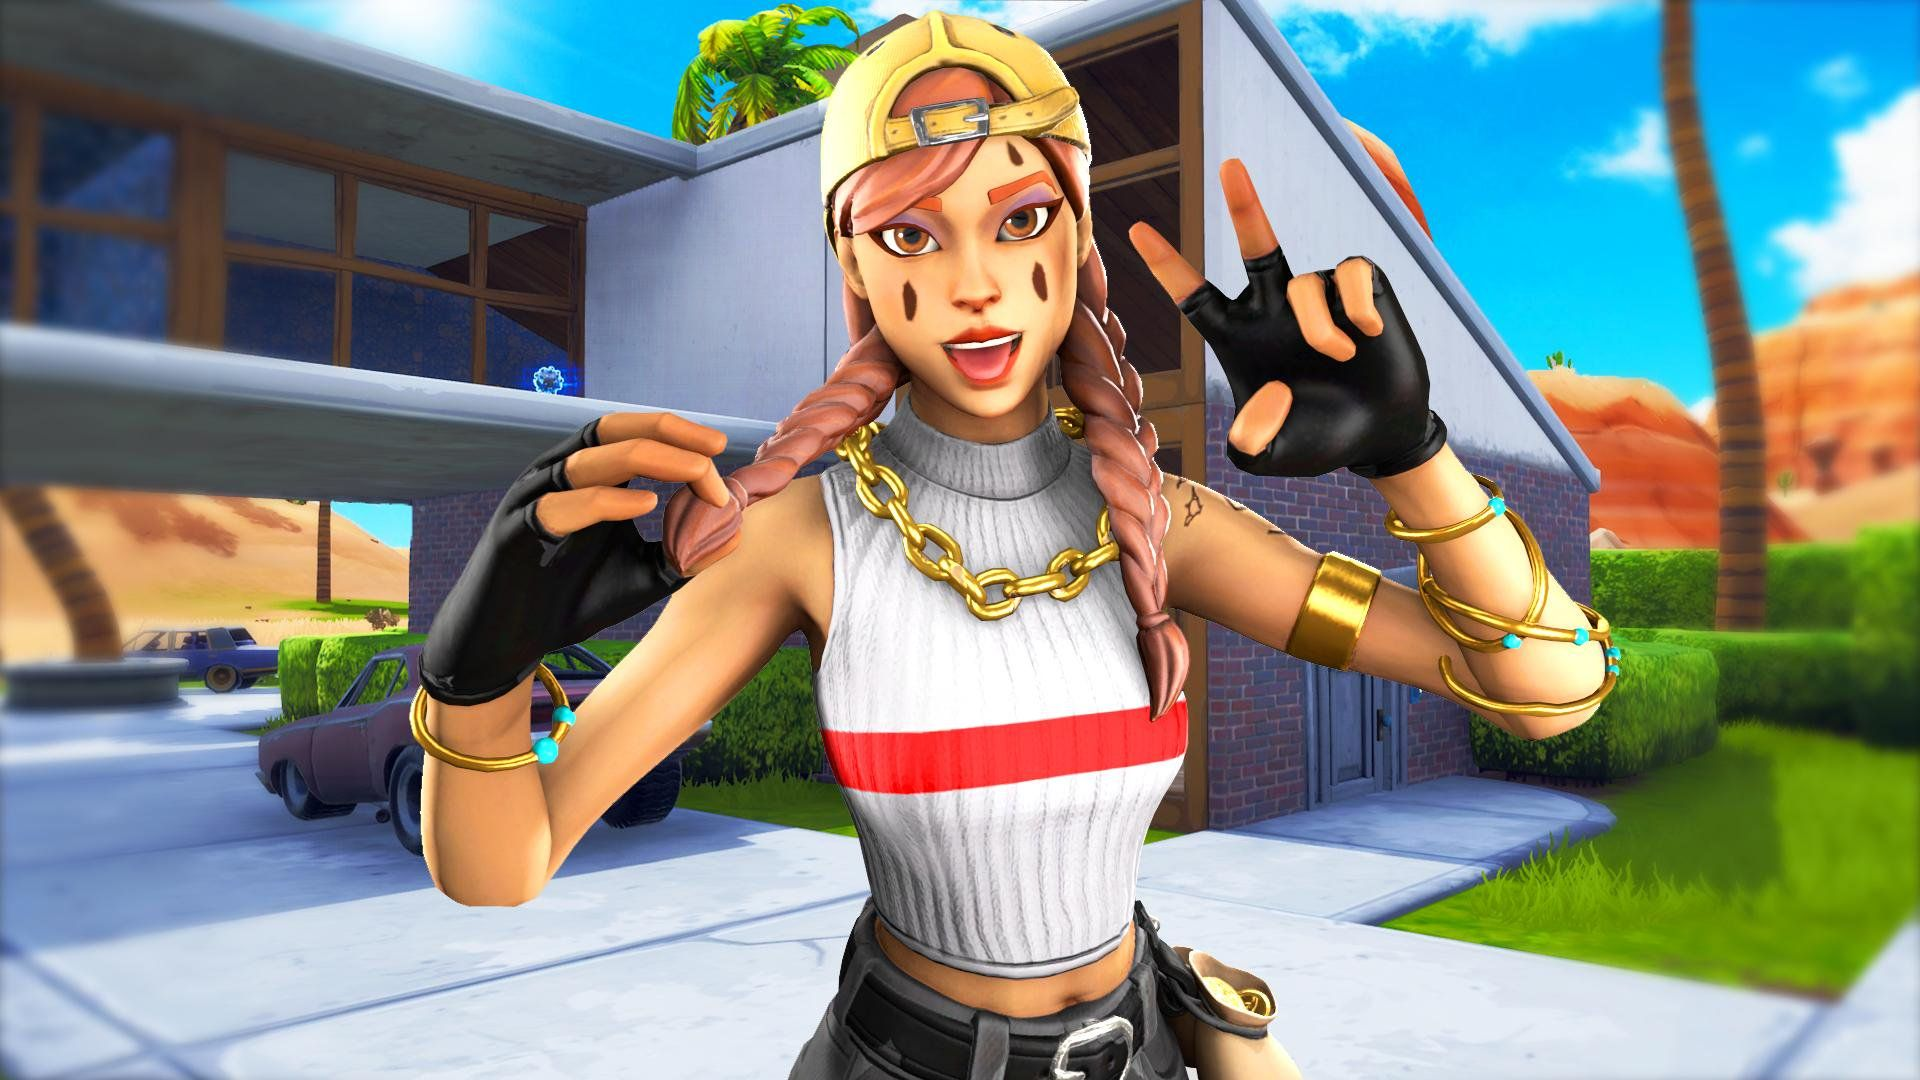 Fortnite Skins 3d Wallpapers Top Free Fortnite Skins 3d Backgrounds Wallpaperaccess